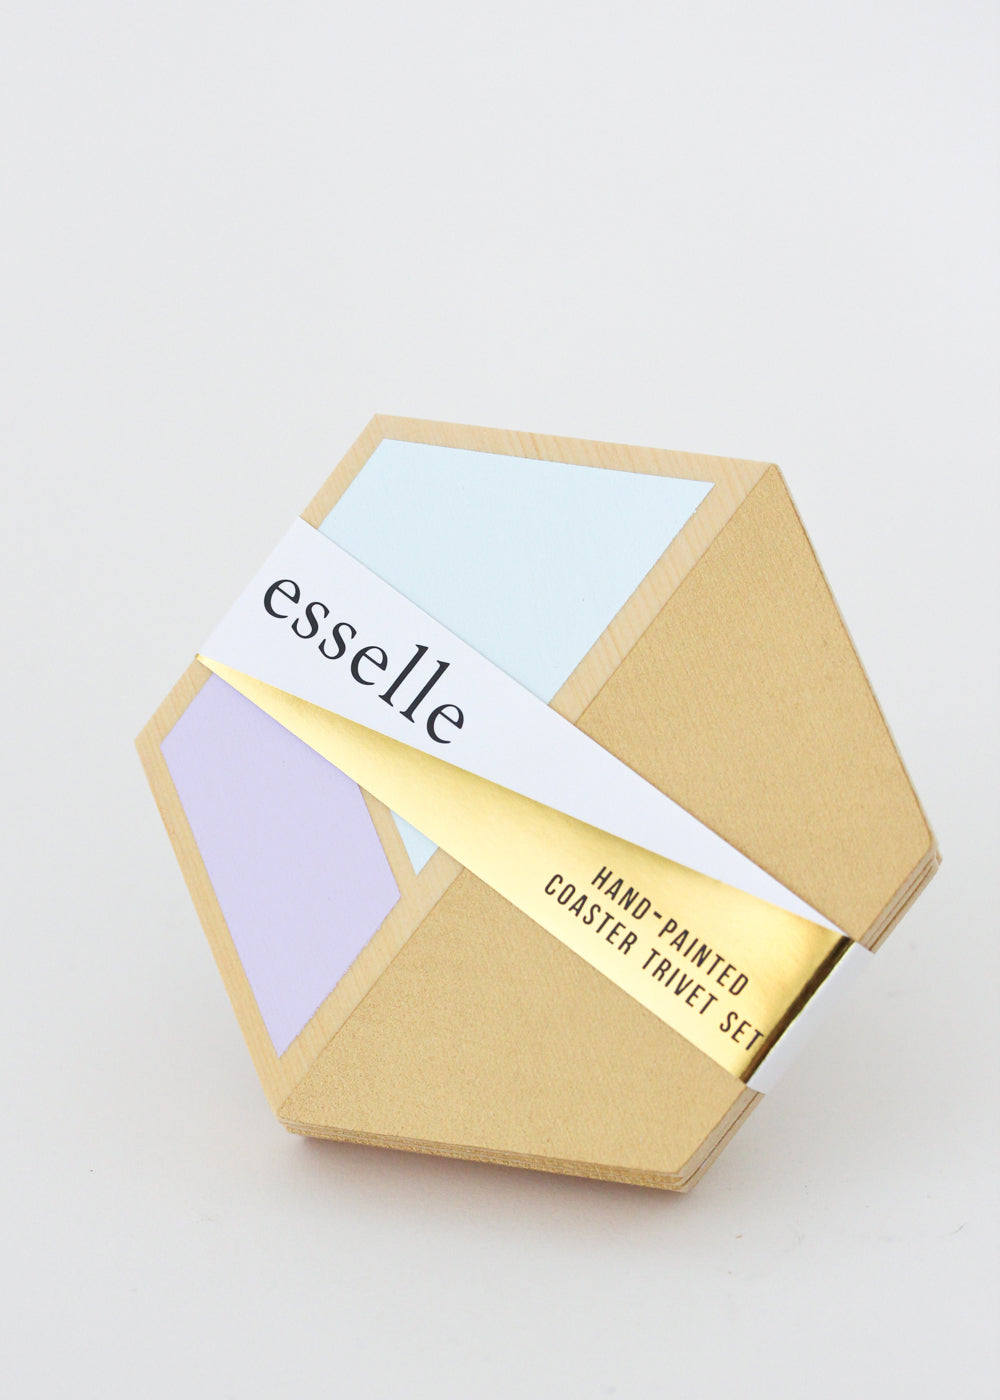 wooden hexagon coasters (lilac/gold)- set of 4